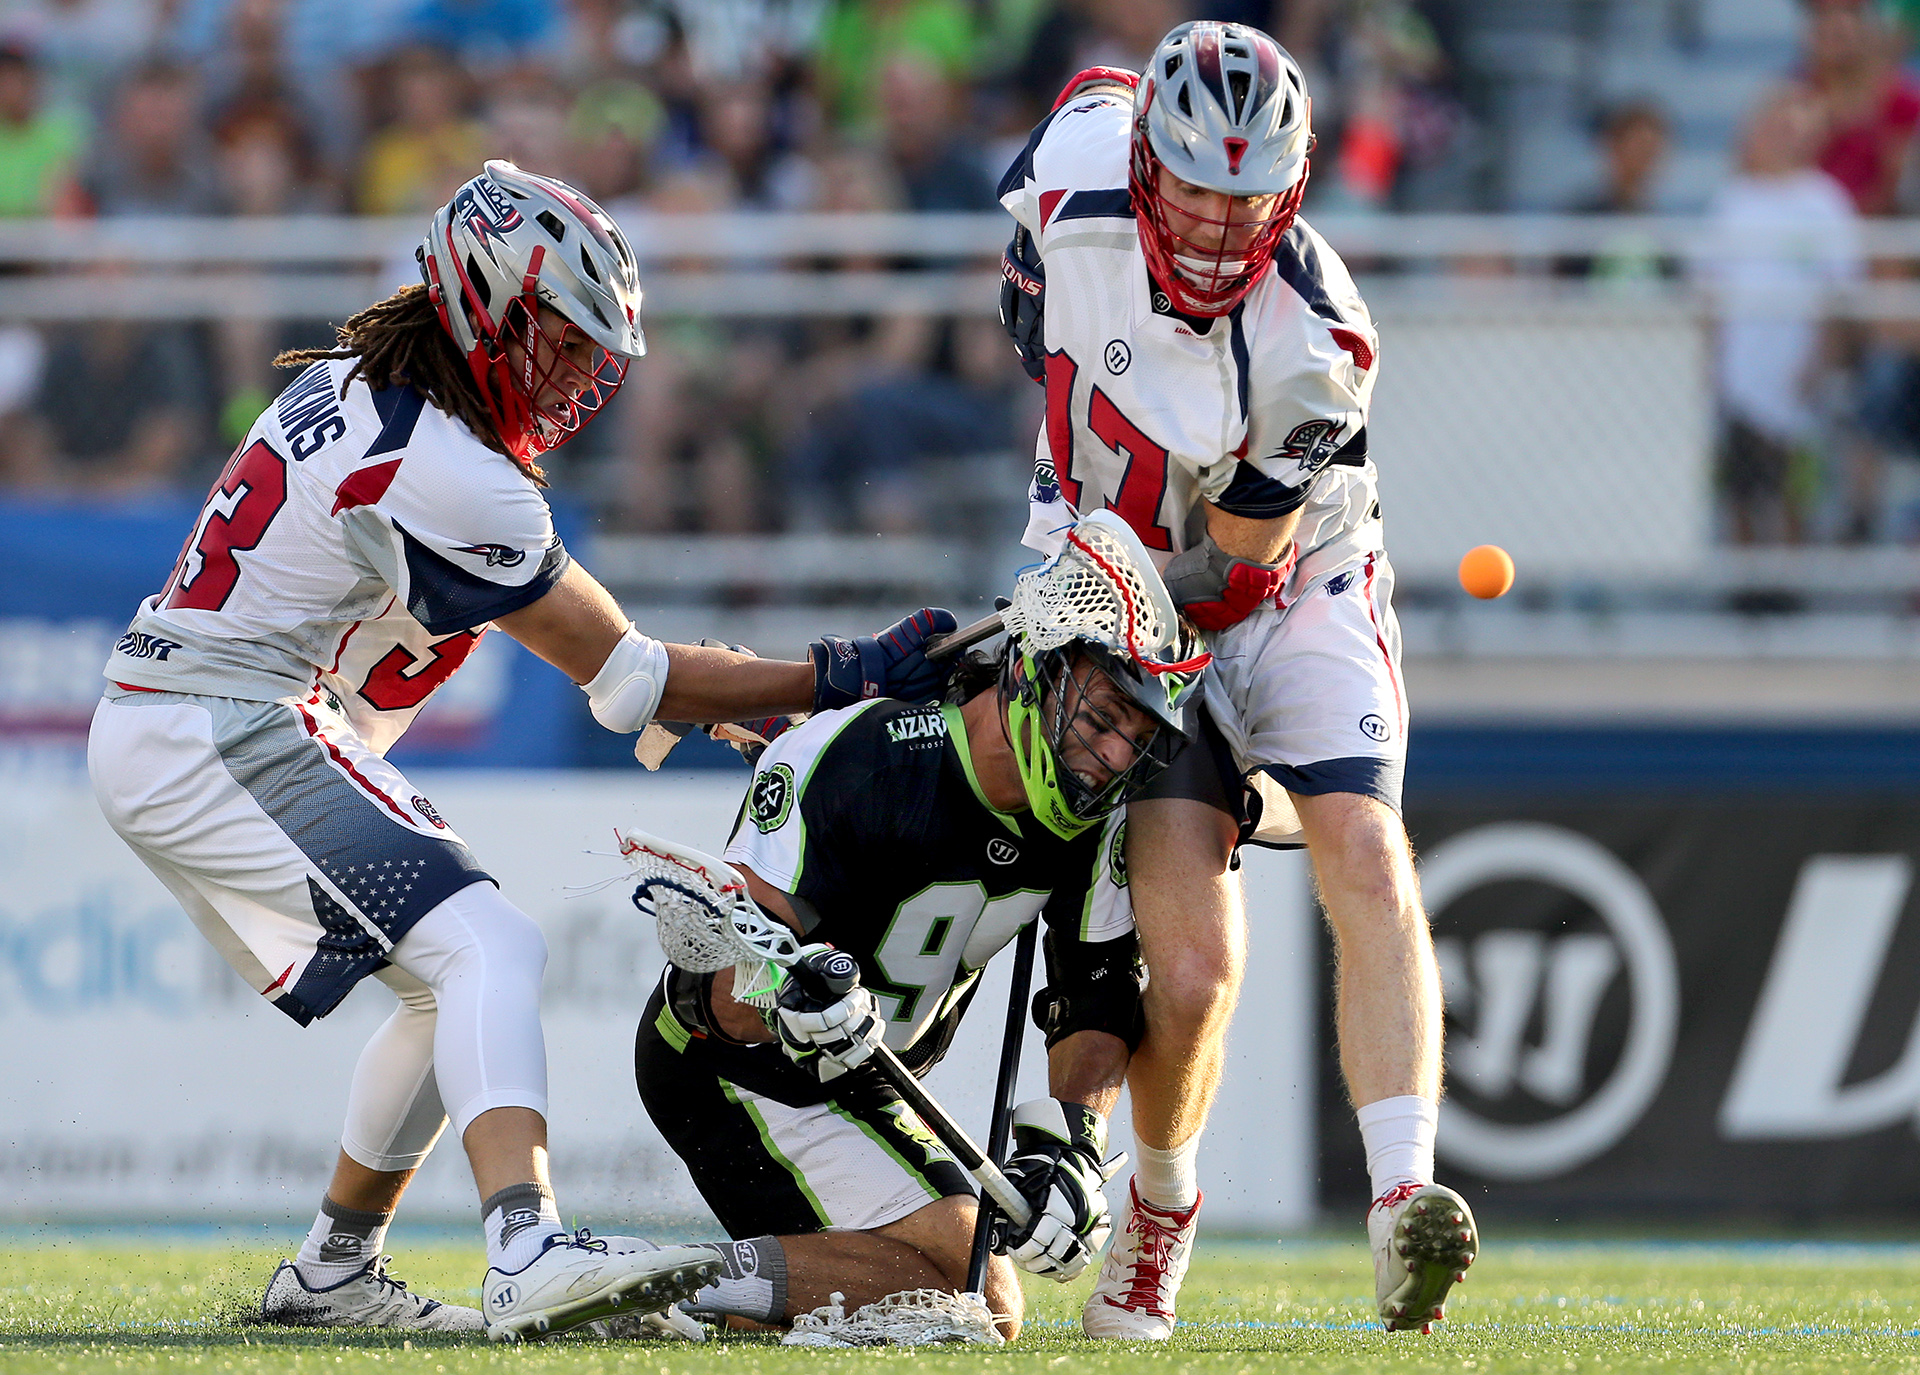 HEMPSTEAD, NY - AUGUST 1: Paul Rabil #99 of the New York Lizards has the ball knocked away between Josh Hawkins #33 of the Boston Cannons and Brodie Merrill #17 also of the Cannons at James M. Shuart Stadium on August 1, 2015 in Hempstead, New York. (Photo by Adam Hunger/Getty Images)